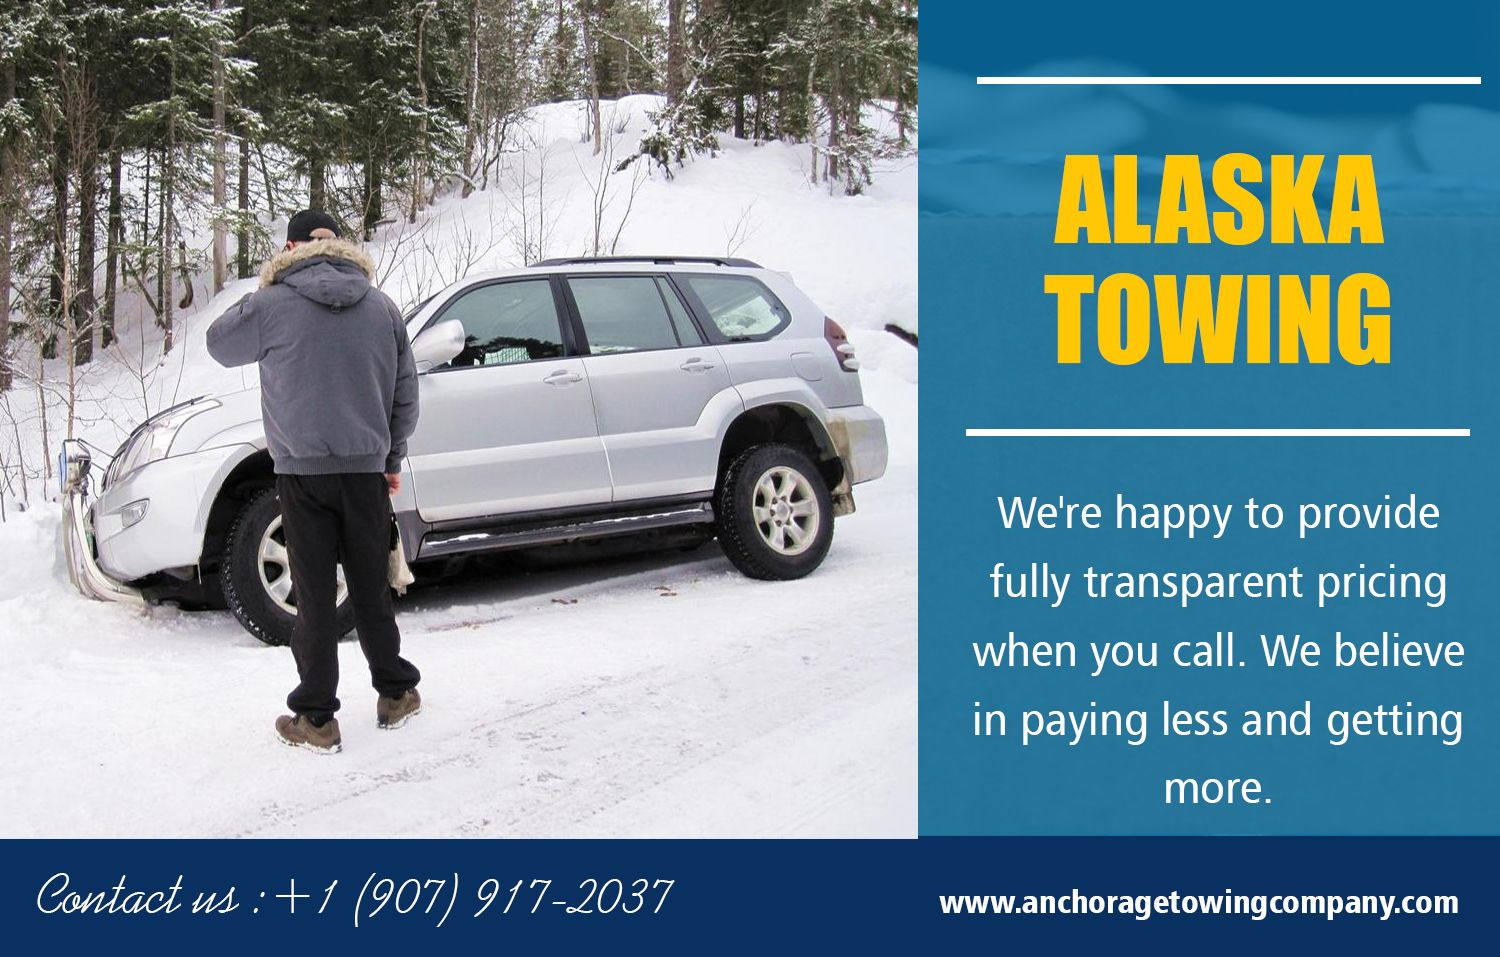 Towing services in anchorage are here to help you to get